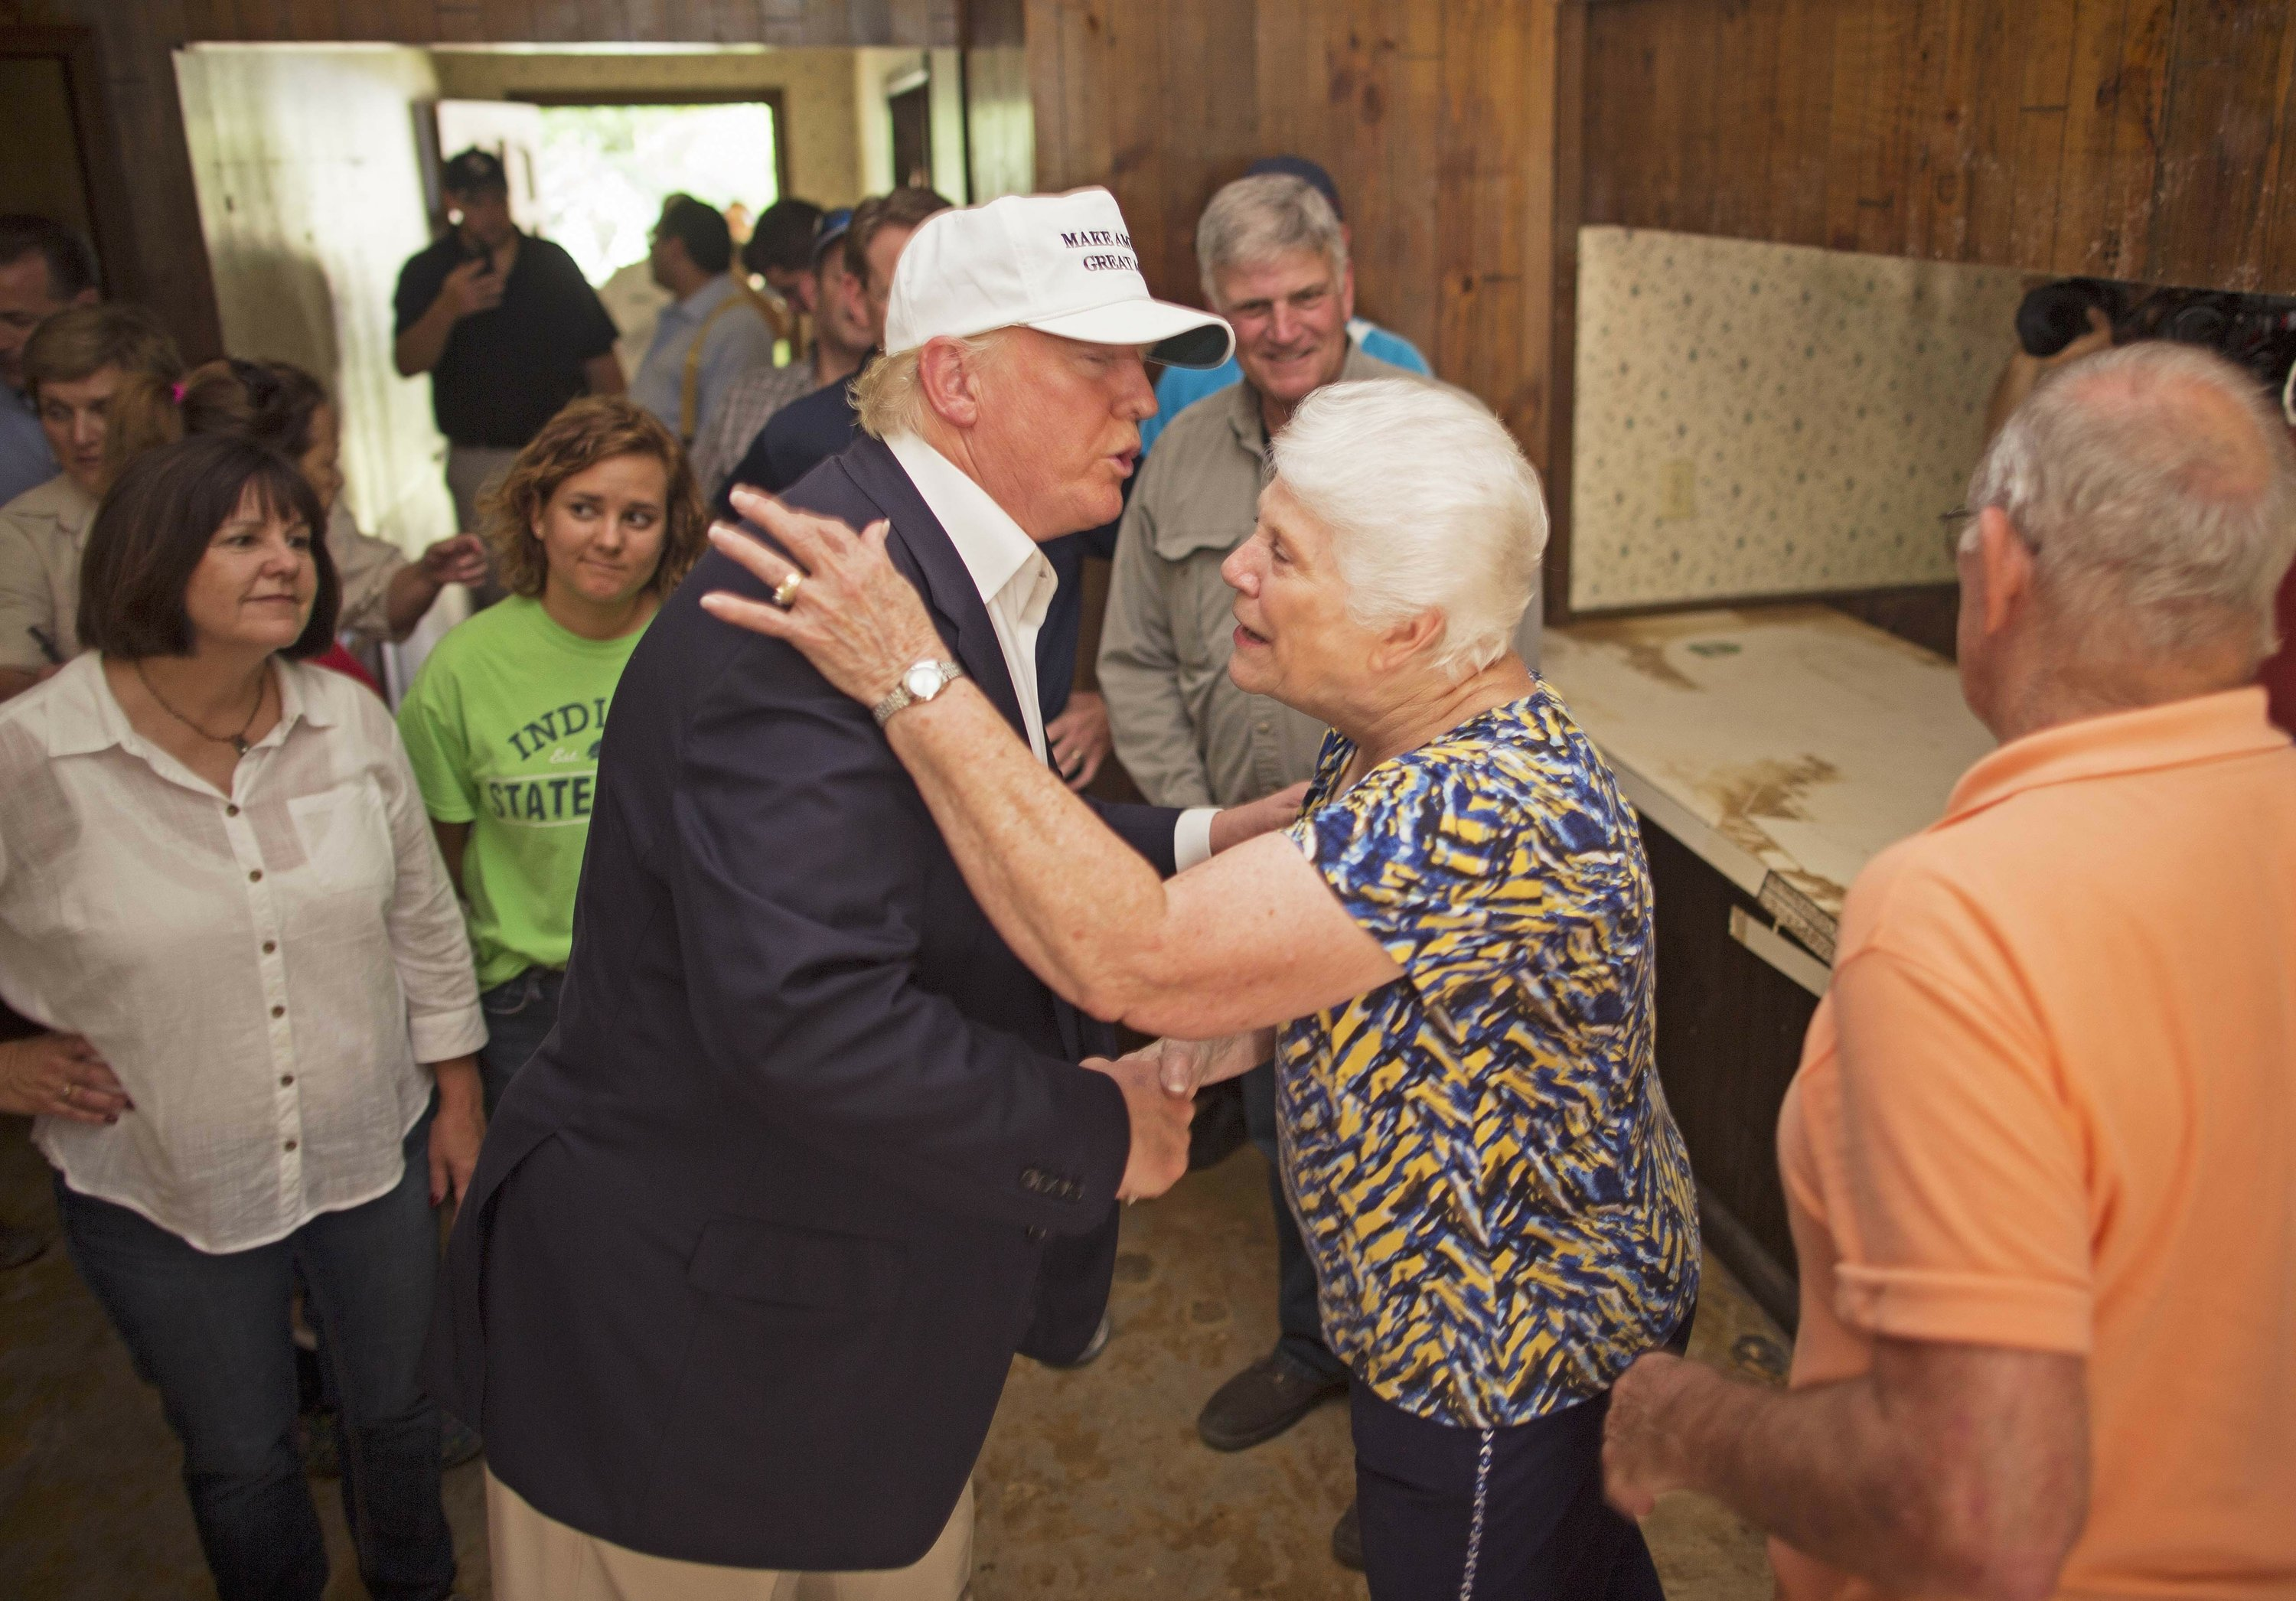 Touring flooding, Trump moves ahead with campaign turnaround